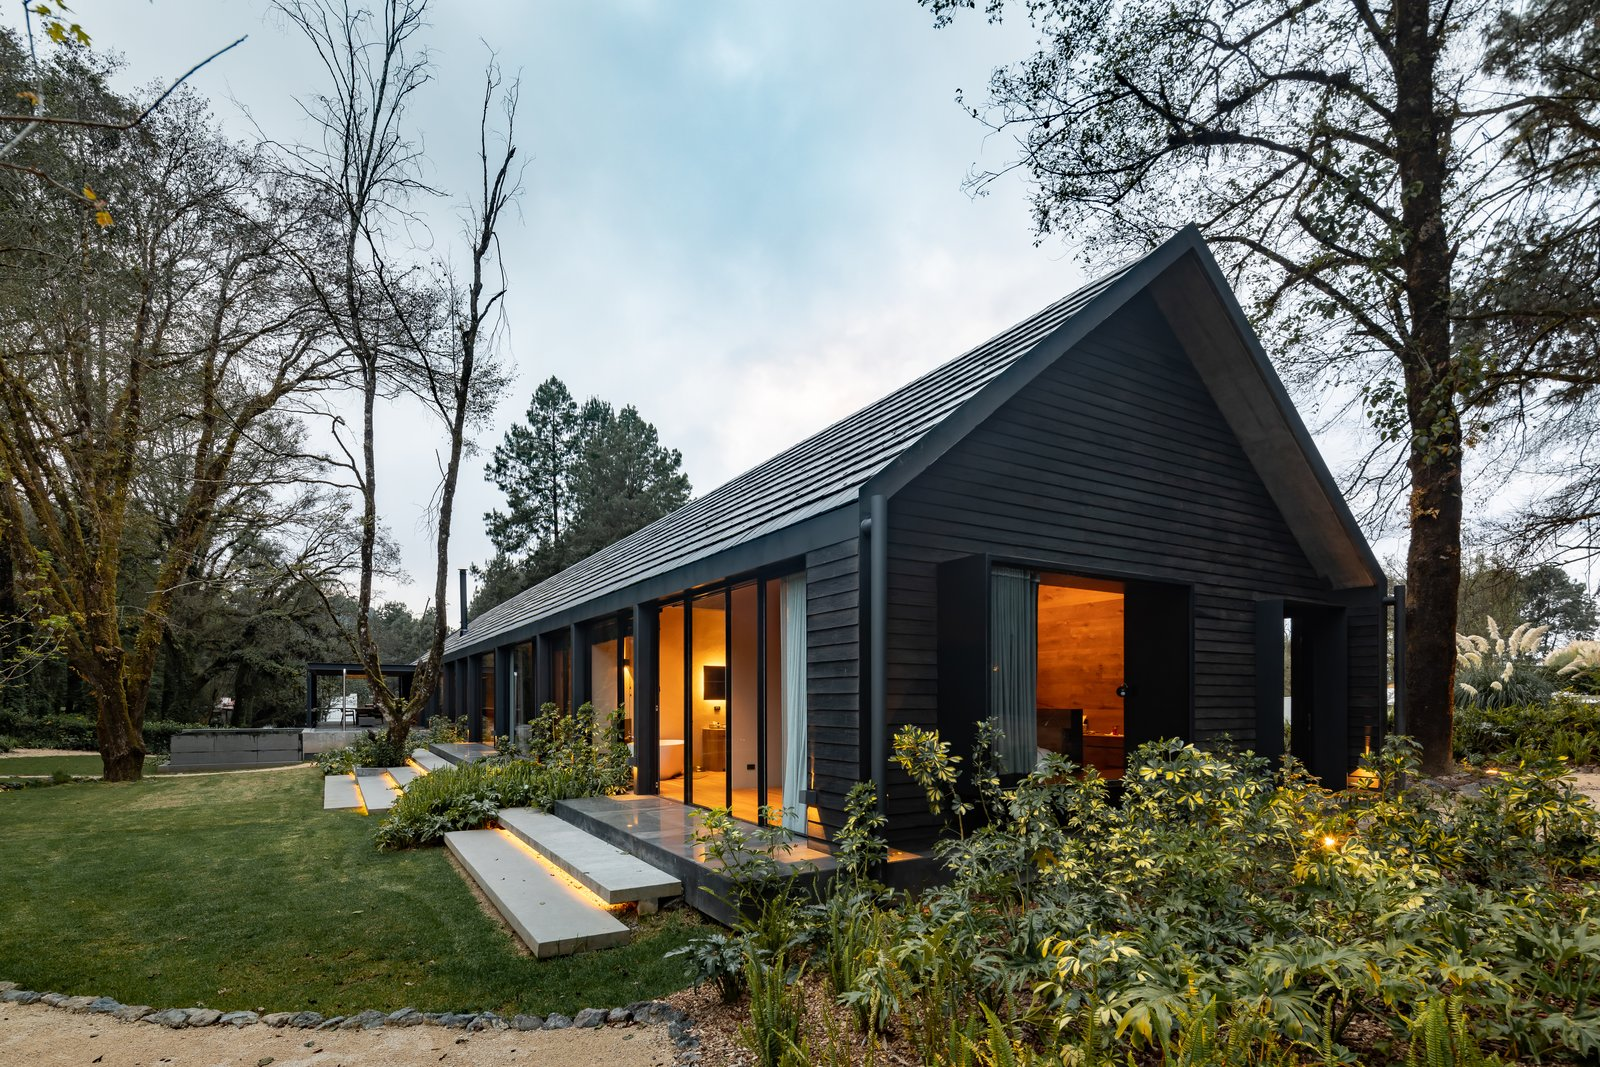 Exterior, House Building Type, Tile Roof Material, Shingles Roof Material, Cabin Building Type, Wood Siding Material, A-Frame RoofLine, and Metal Siding Material  L7 Home by Augusto Fernandez